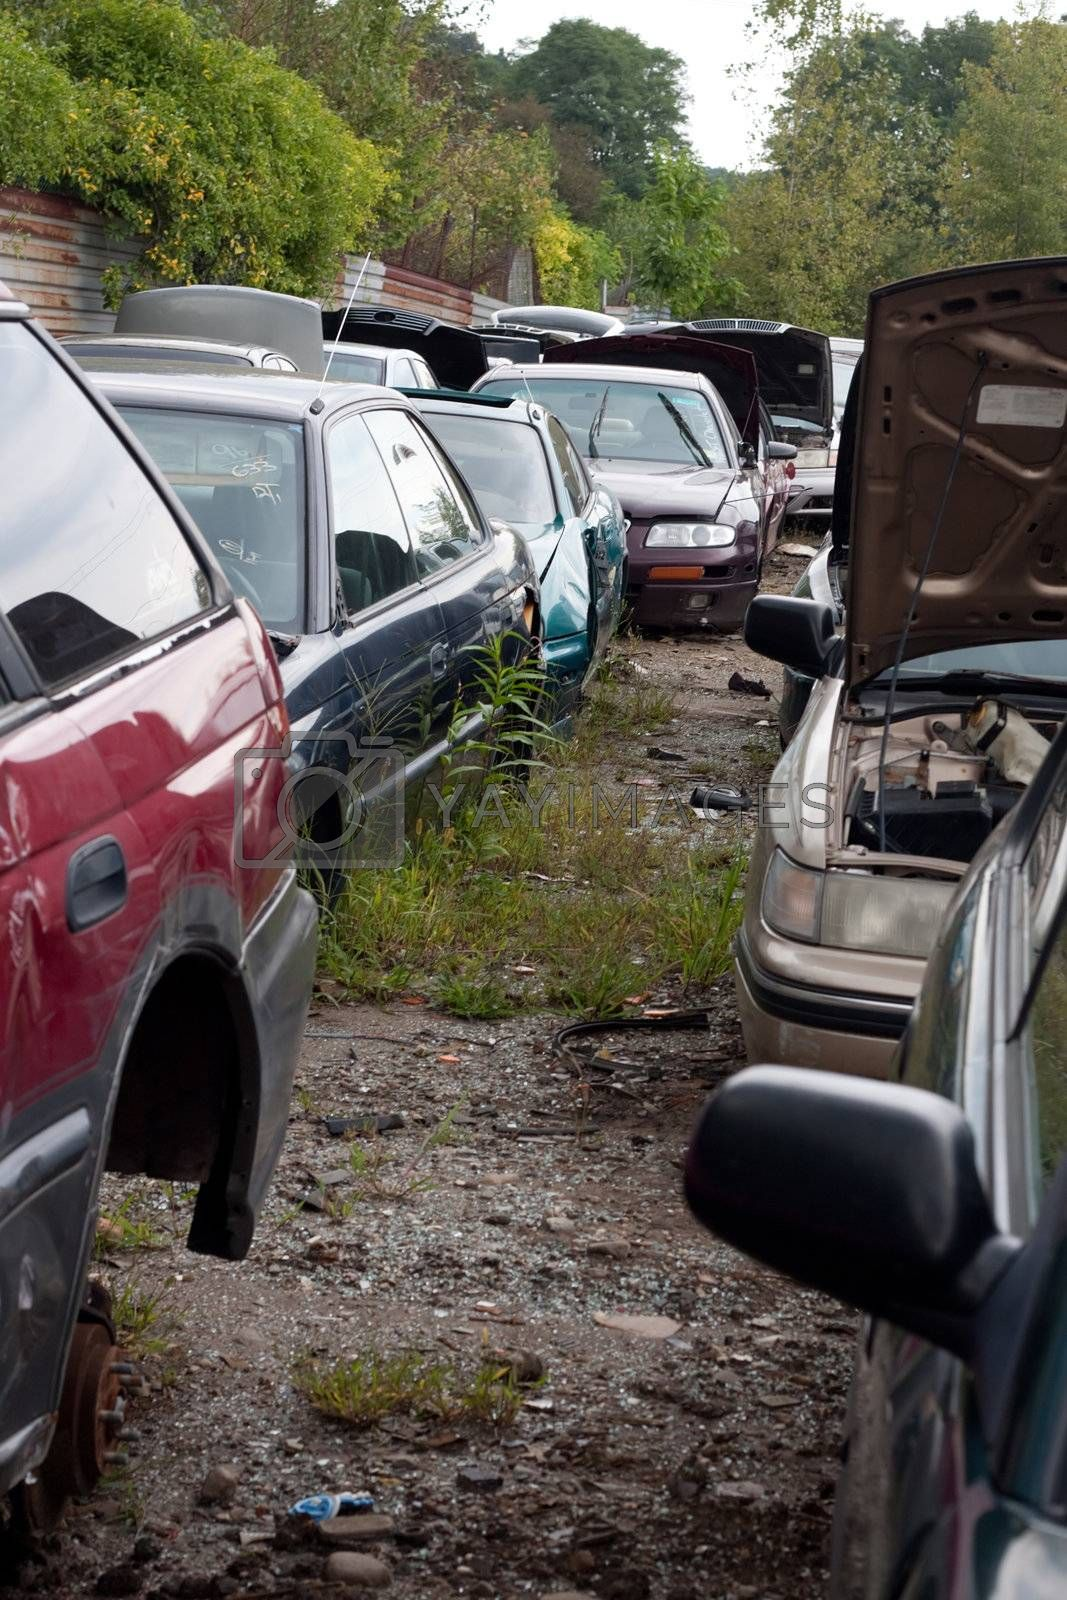 Cars in the Junk Yard by graficallyminded